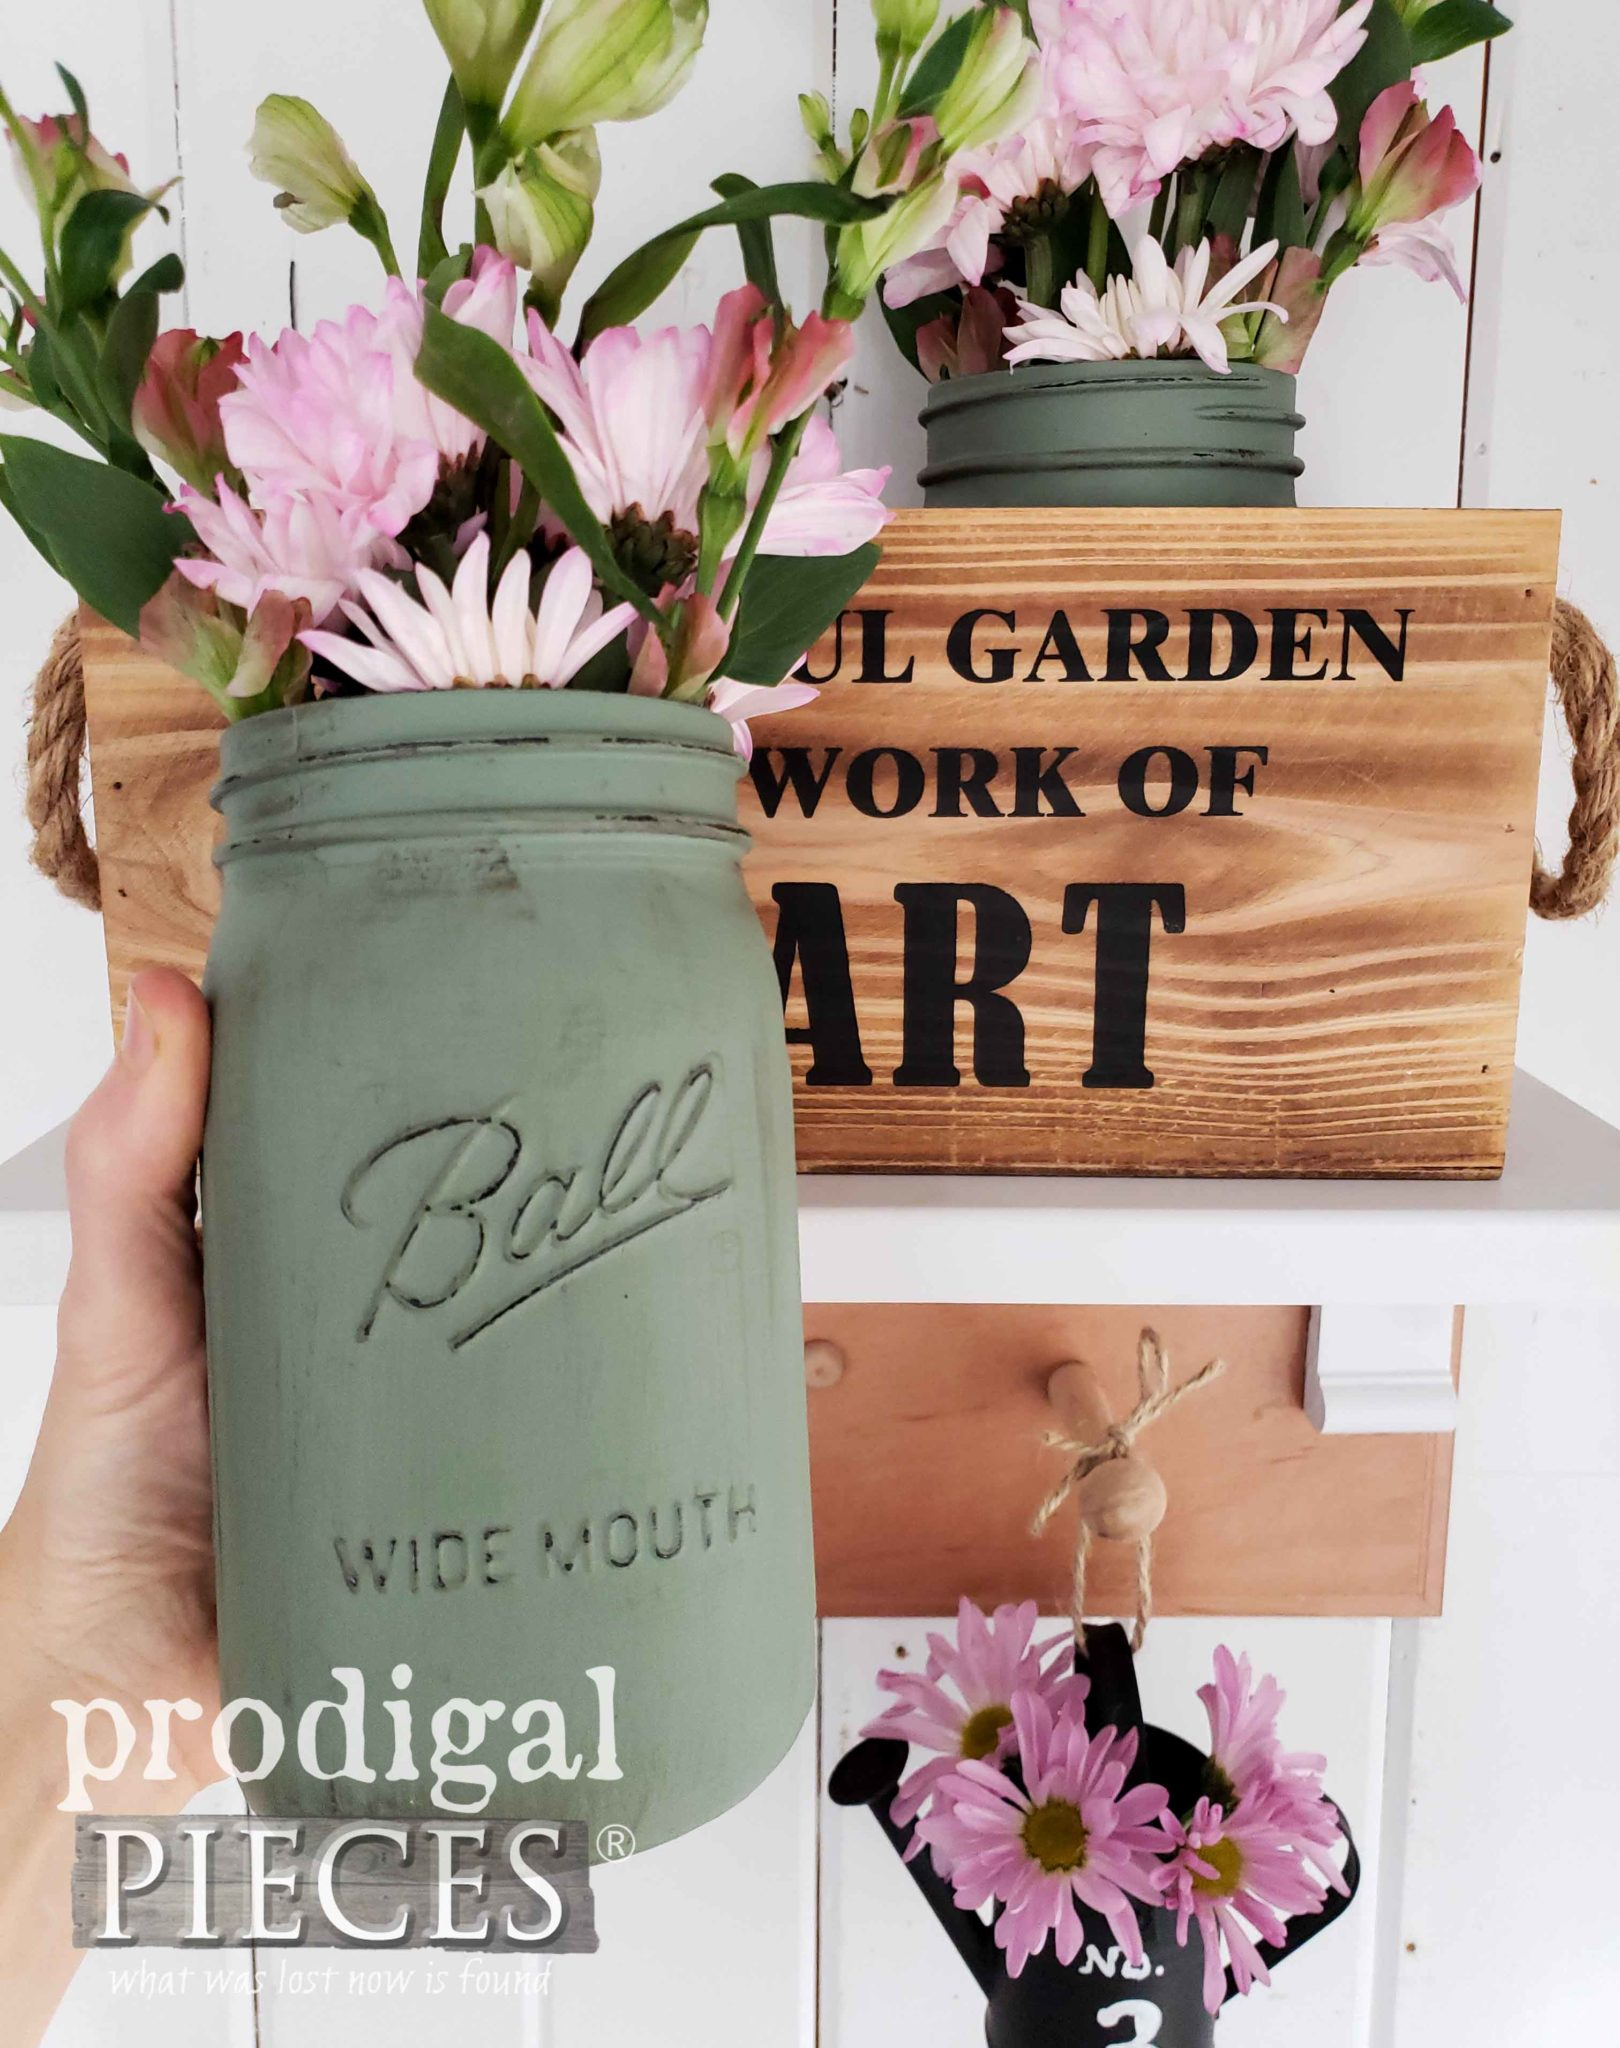 Painted Ball Canning Jars for DIY Spring Decor Fun by Larissa of Prodigal Pieces | prodigalpieces.com #prodigalpieces #farmhouse #home #diy #homedecor #spring #homedecorideas #handmade